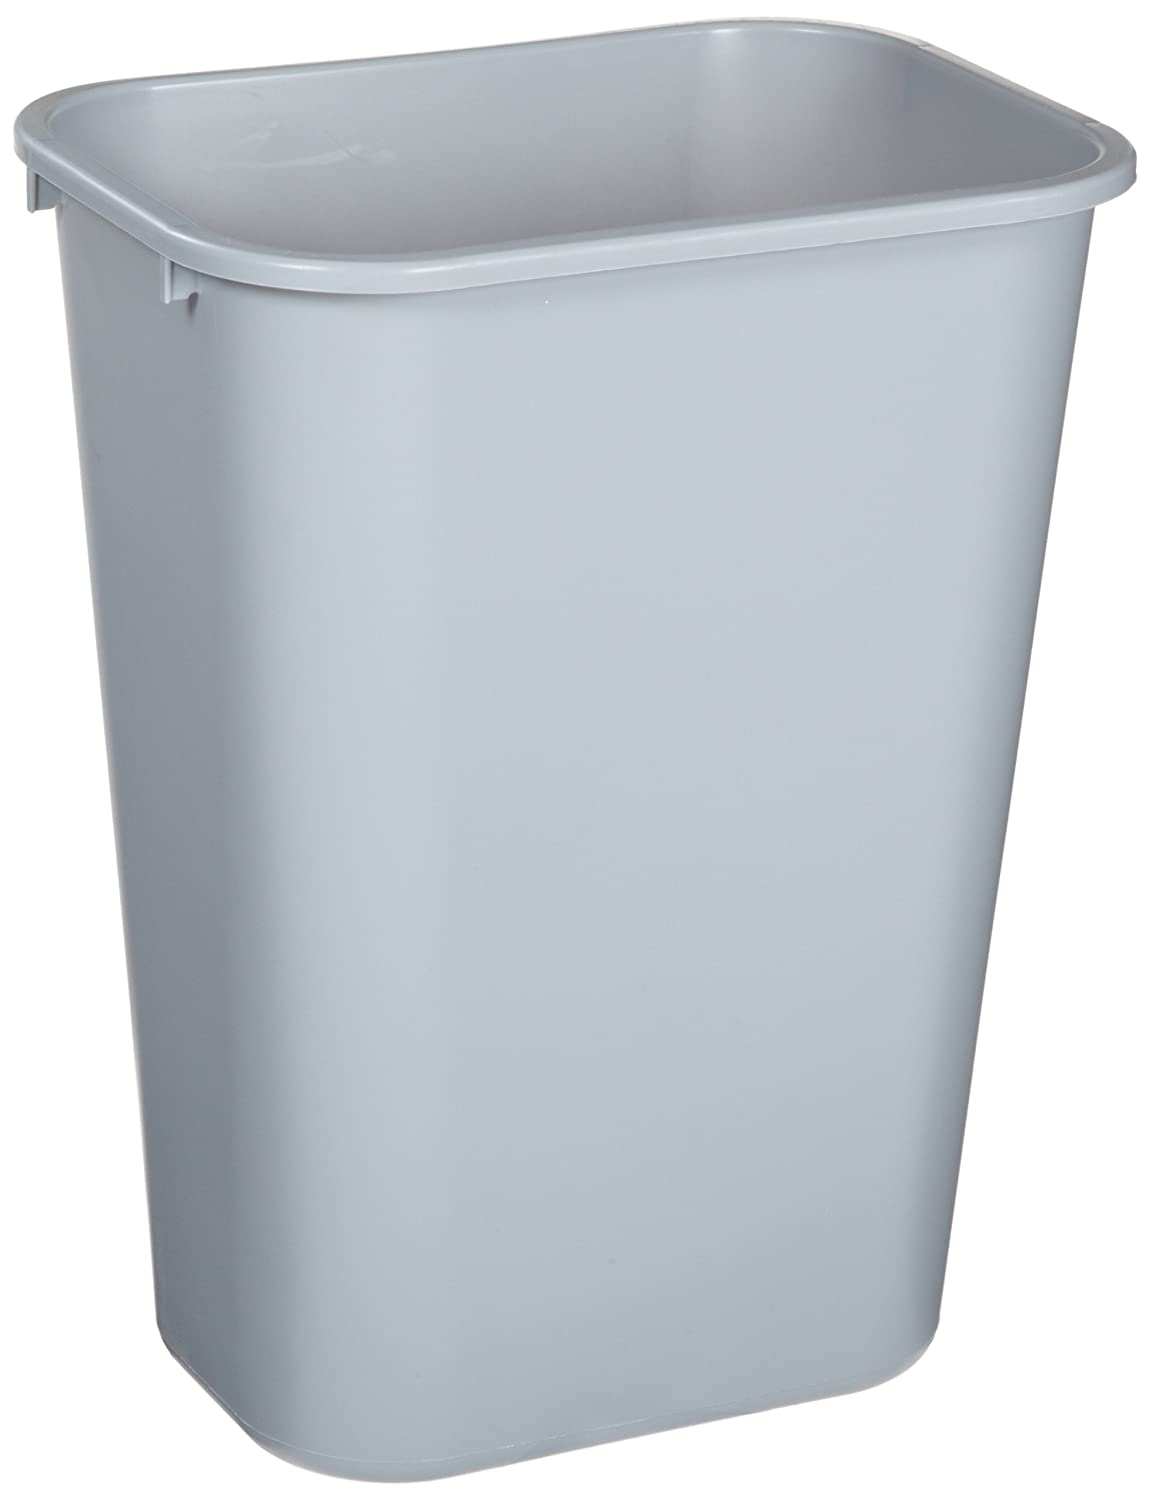 kitchen trash can dimensions remodeling ideas on a small budget productfeatures and description